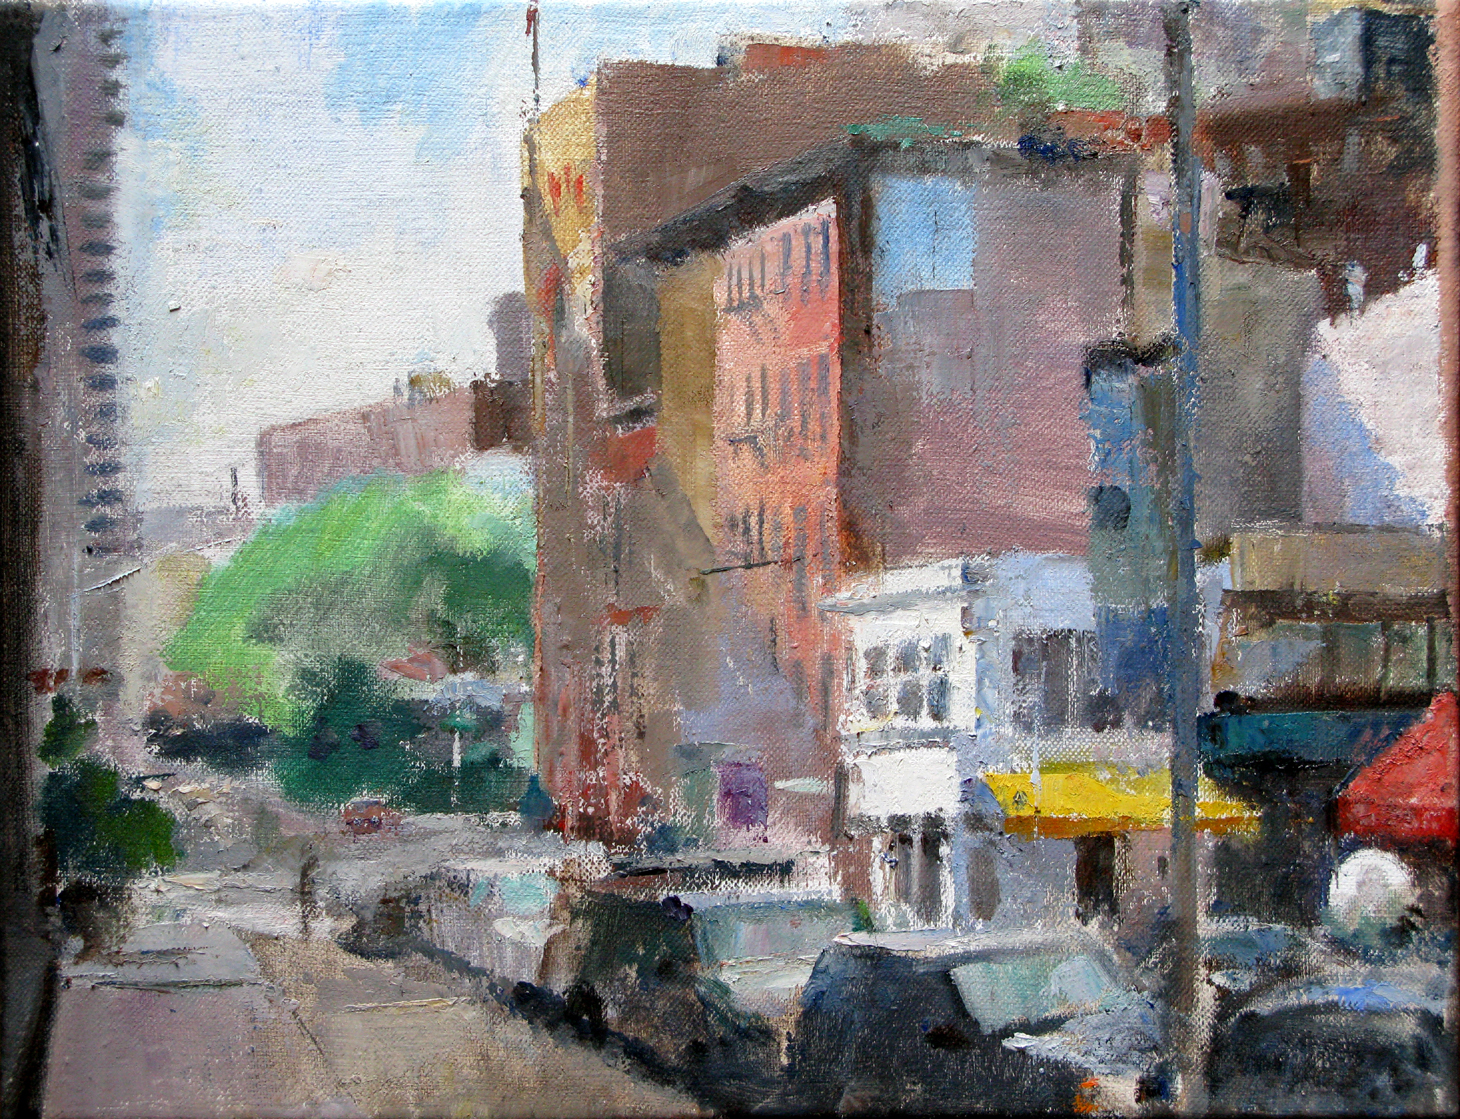 Duane Street at West Broadway, 13 x 17 inches, oil on linen